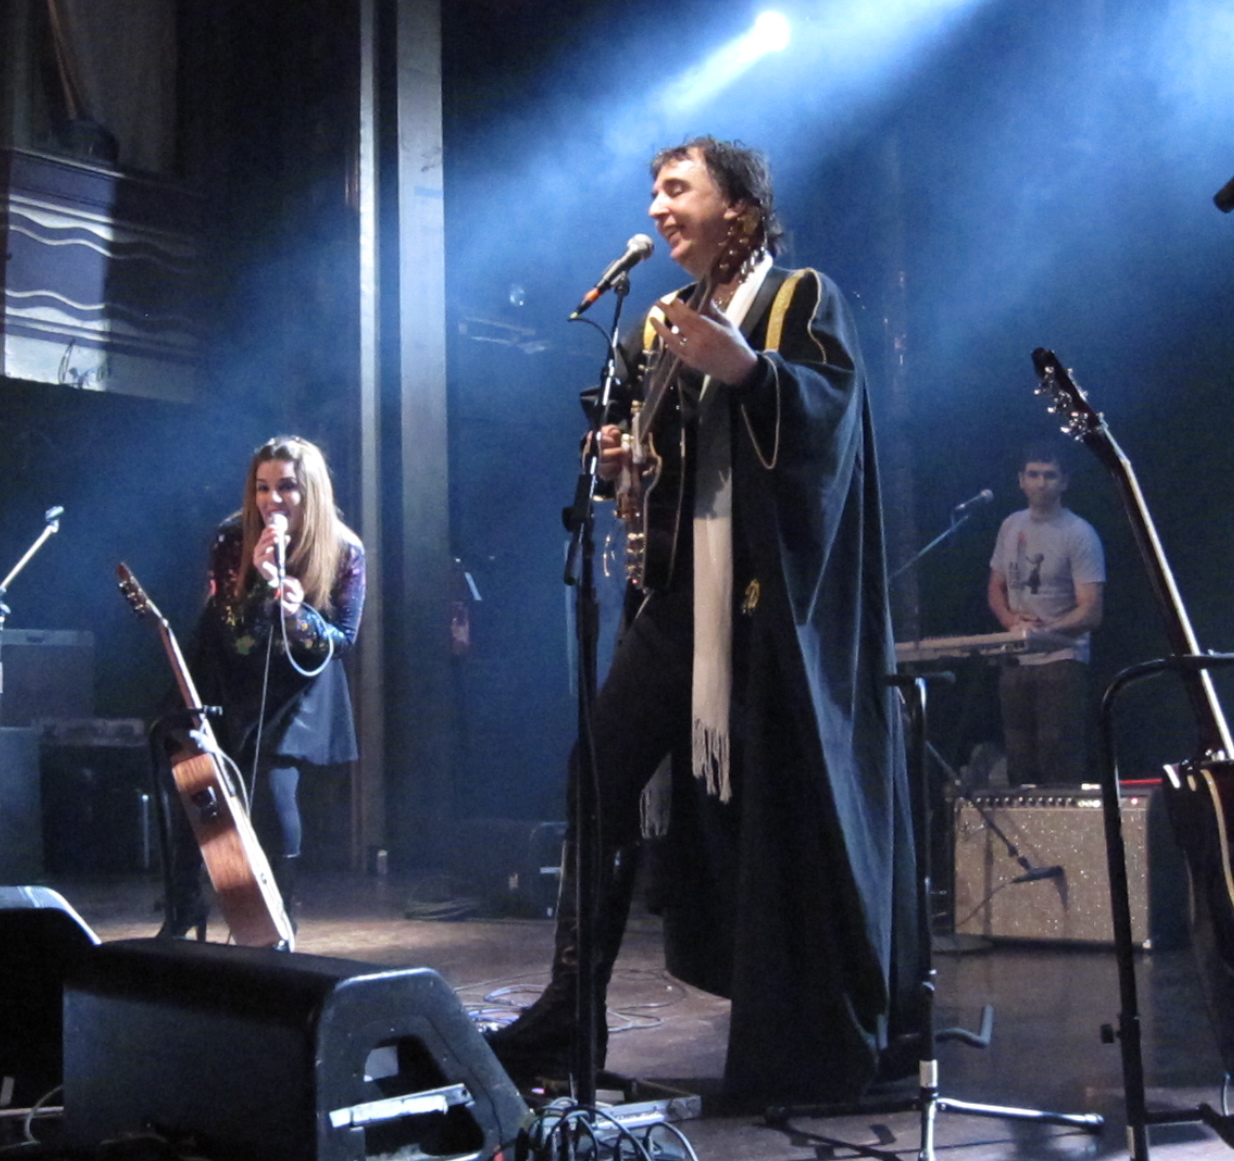 Sergio Diás leading Os Mutantes through a rollicking set at NYC's Webster Hall. (Photos copyright 2009, Steven P. Marsh)